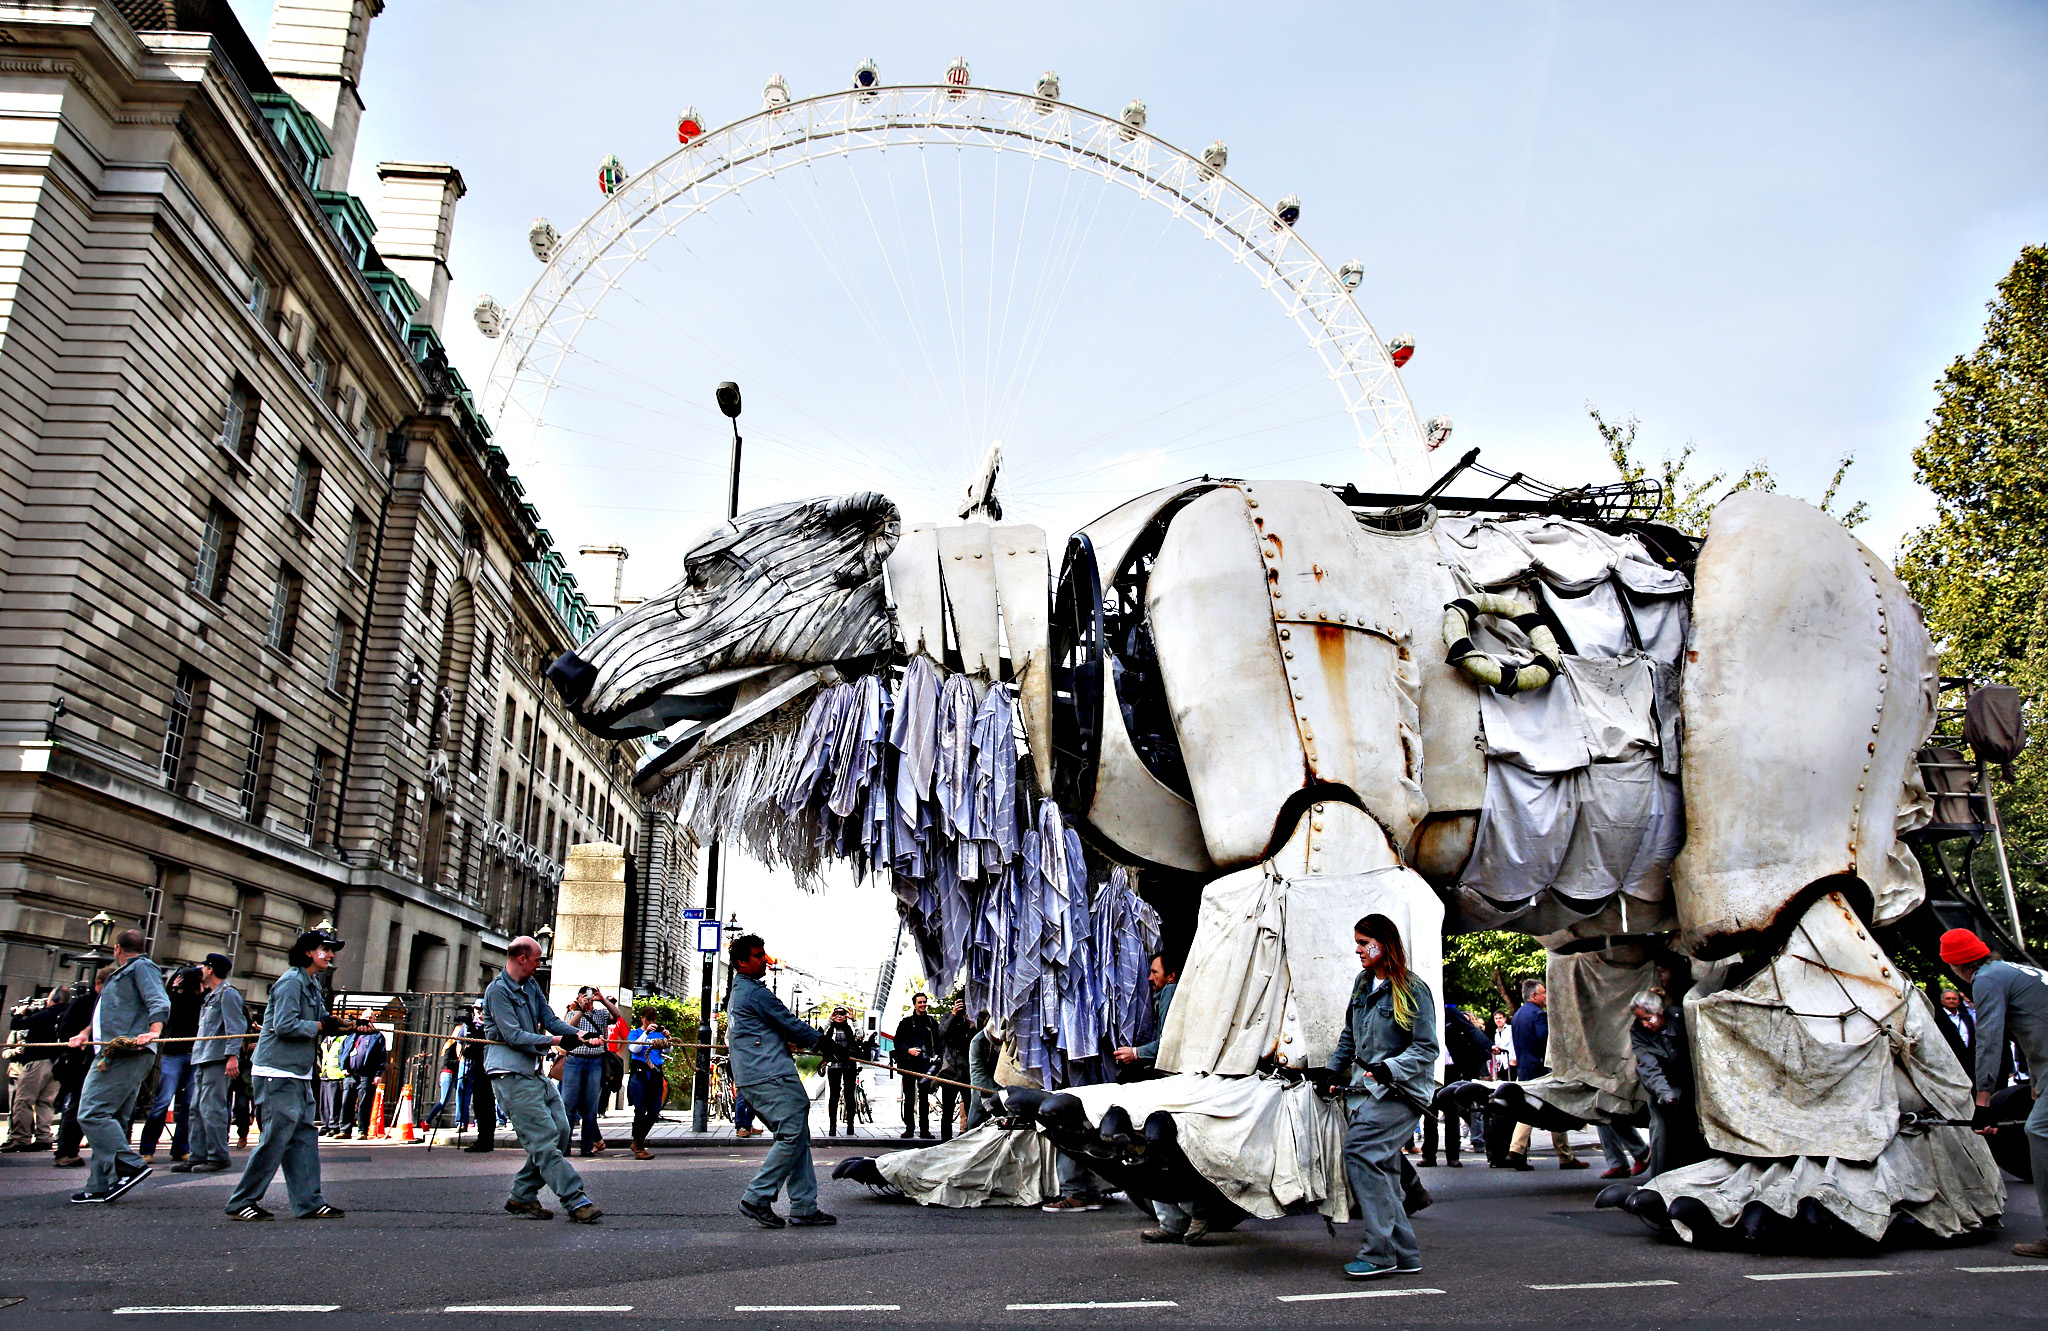 A giant model of a Polar Bear is moved from its position outside the Shell building after Actress Emma Thomson joined Greenpeace climate change activists on September 29, 2015 in London, England. The event was marked as a celebration after the Anglo-Dutch oil company announced yesterday that it was pulling out of Arctic oil drilling.